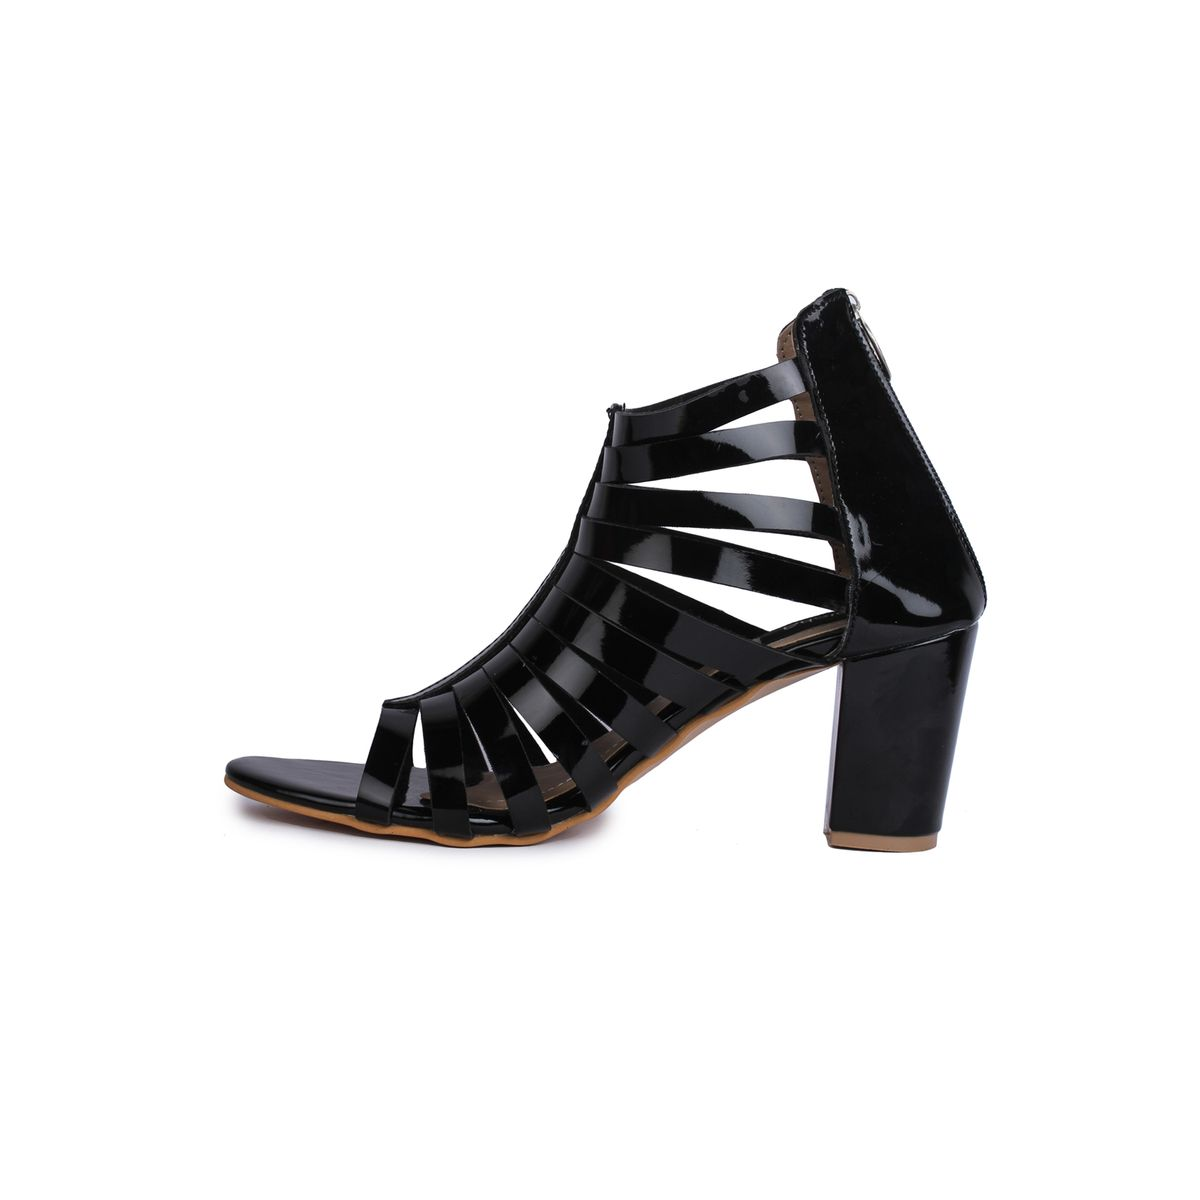 Naisha Stilettos  Heels For Womens Sc-Kh-602-Black-352